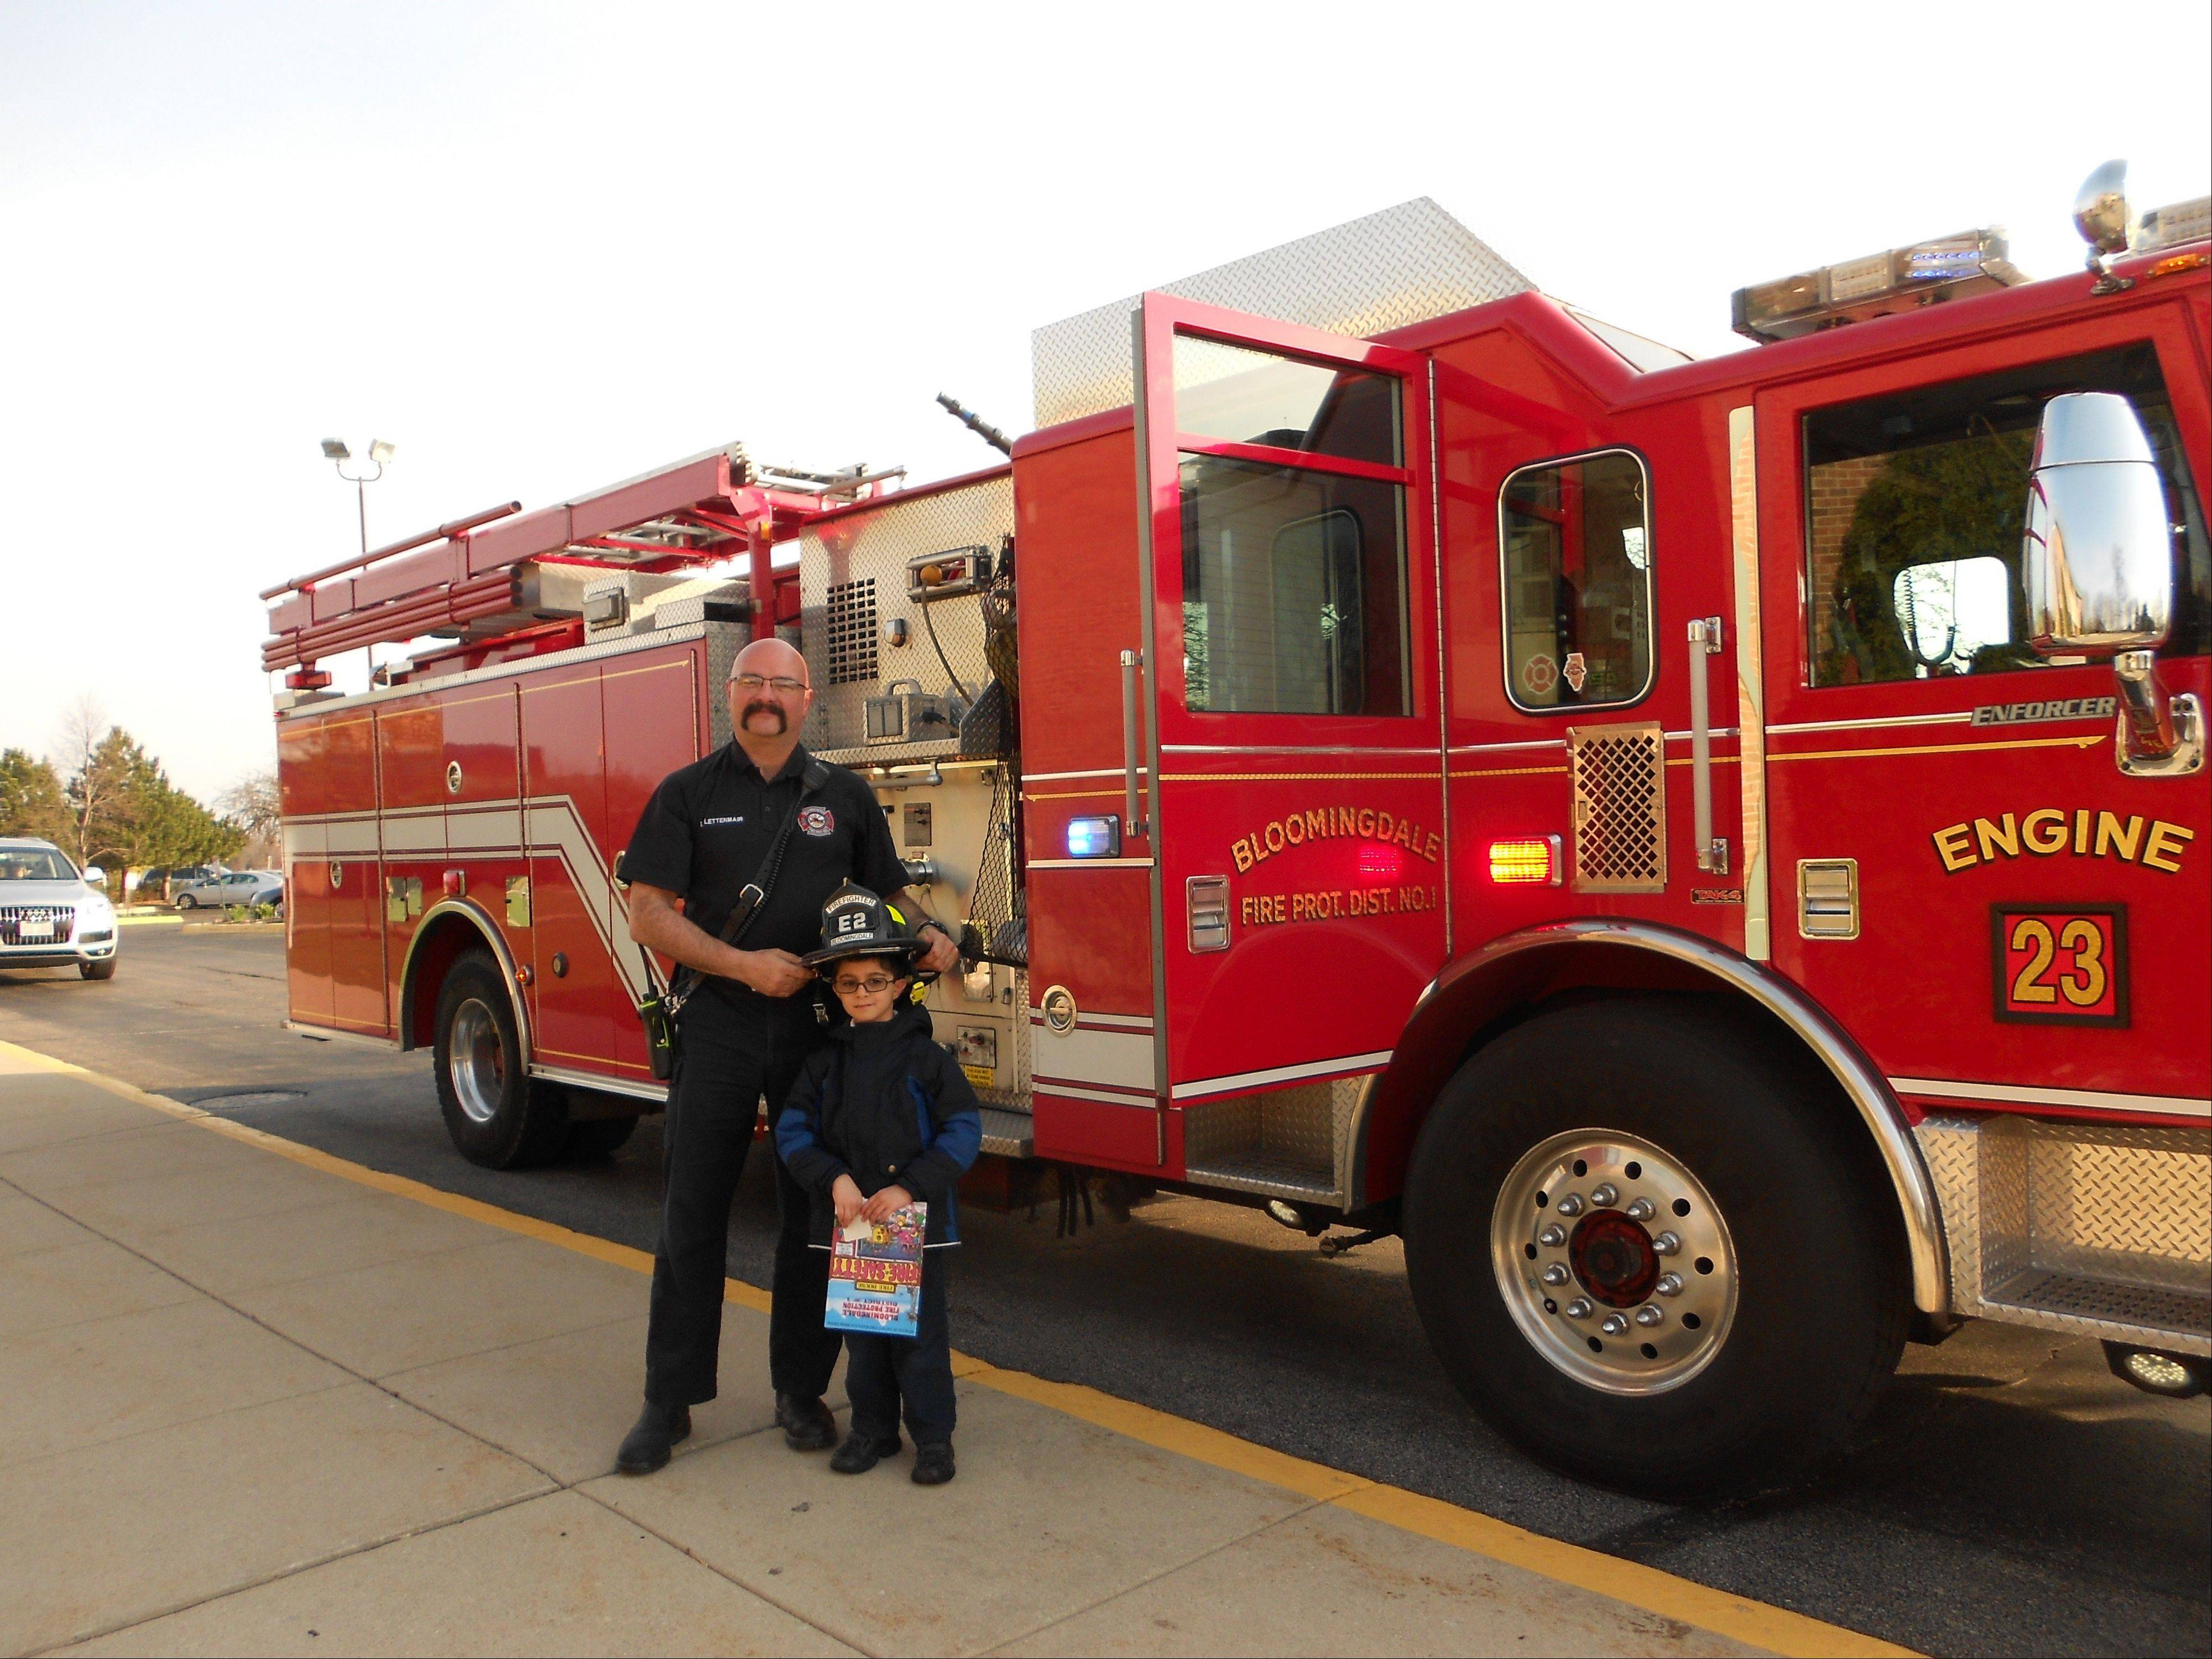 Kindergartner Rayhaan Irani of Carol Stream got a ride to school in a Bloomingdale Fire Protection District engine with Lt. Lou Lettenmair and several firefighters. Rayhaan's parents won the opportunity in an auction fundraiser for St. Isidore School.